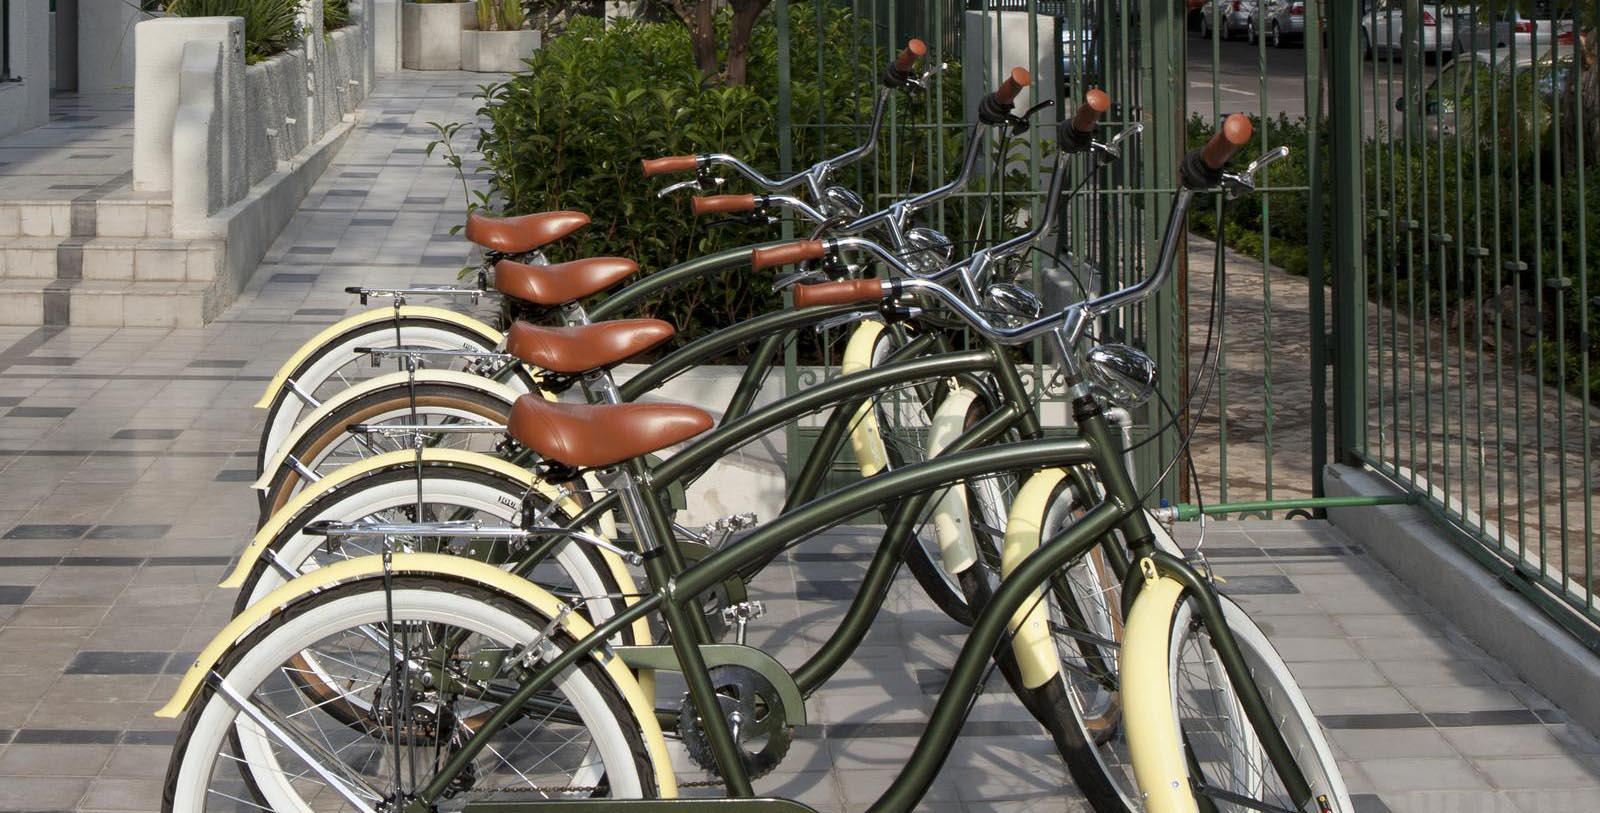 Image of bikes available for rent Casa Habita, 1938, Member of Historic Hotels Worldwide, in Guadalajara, Mexico, Explore